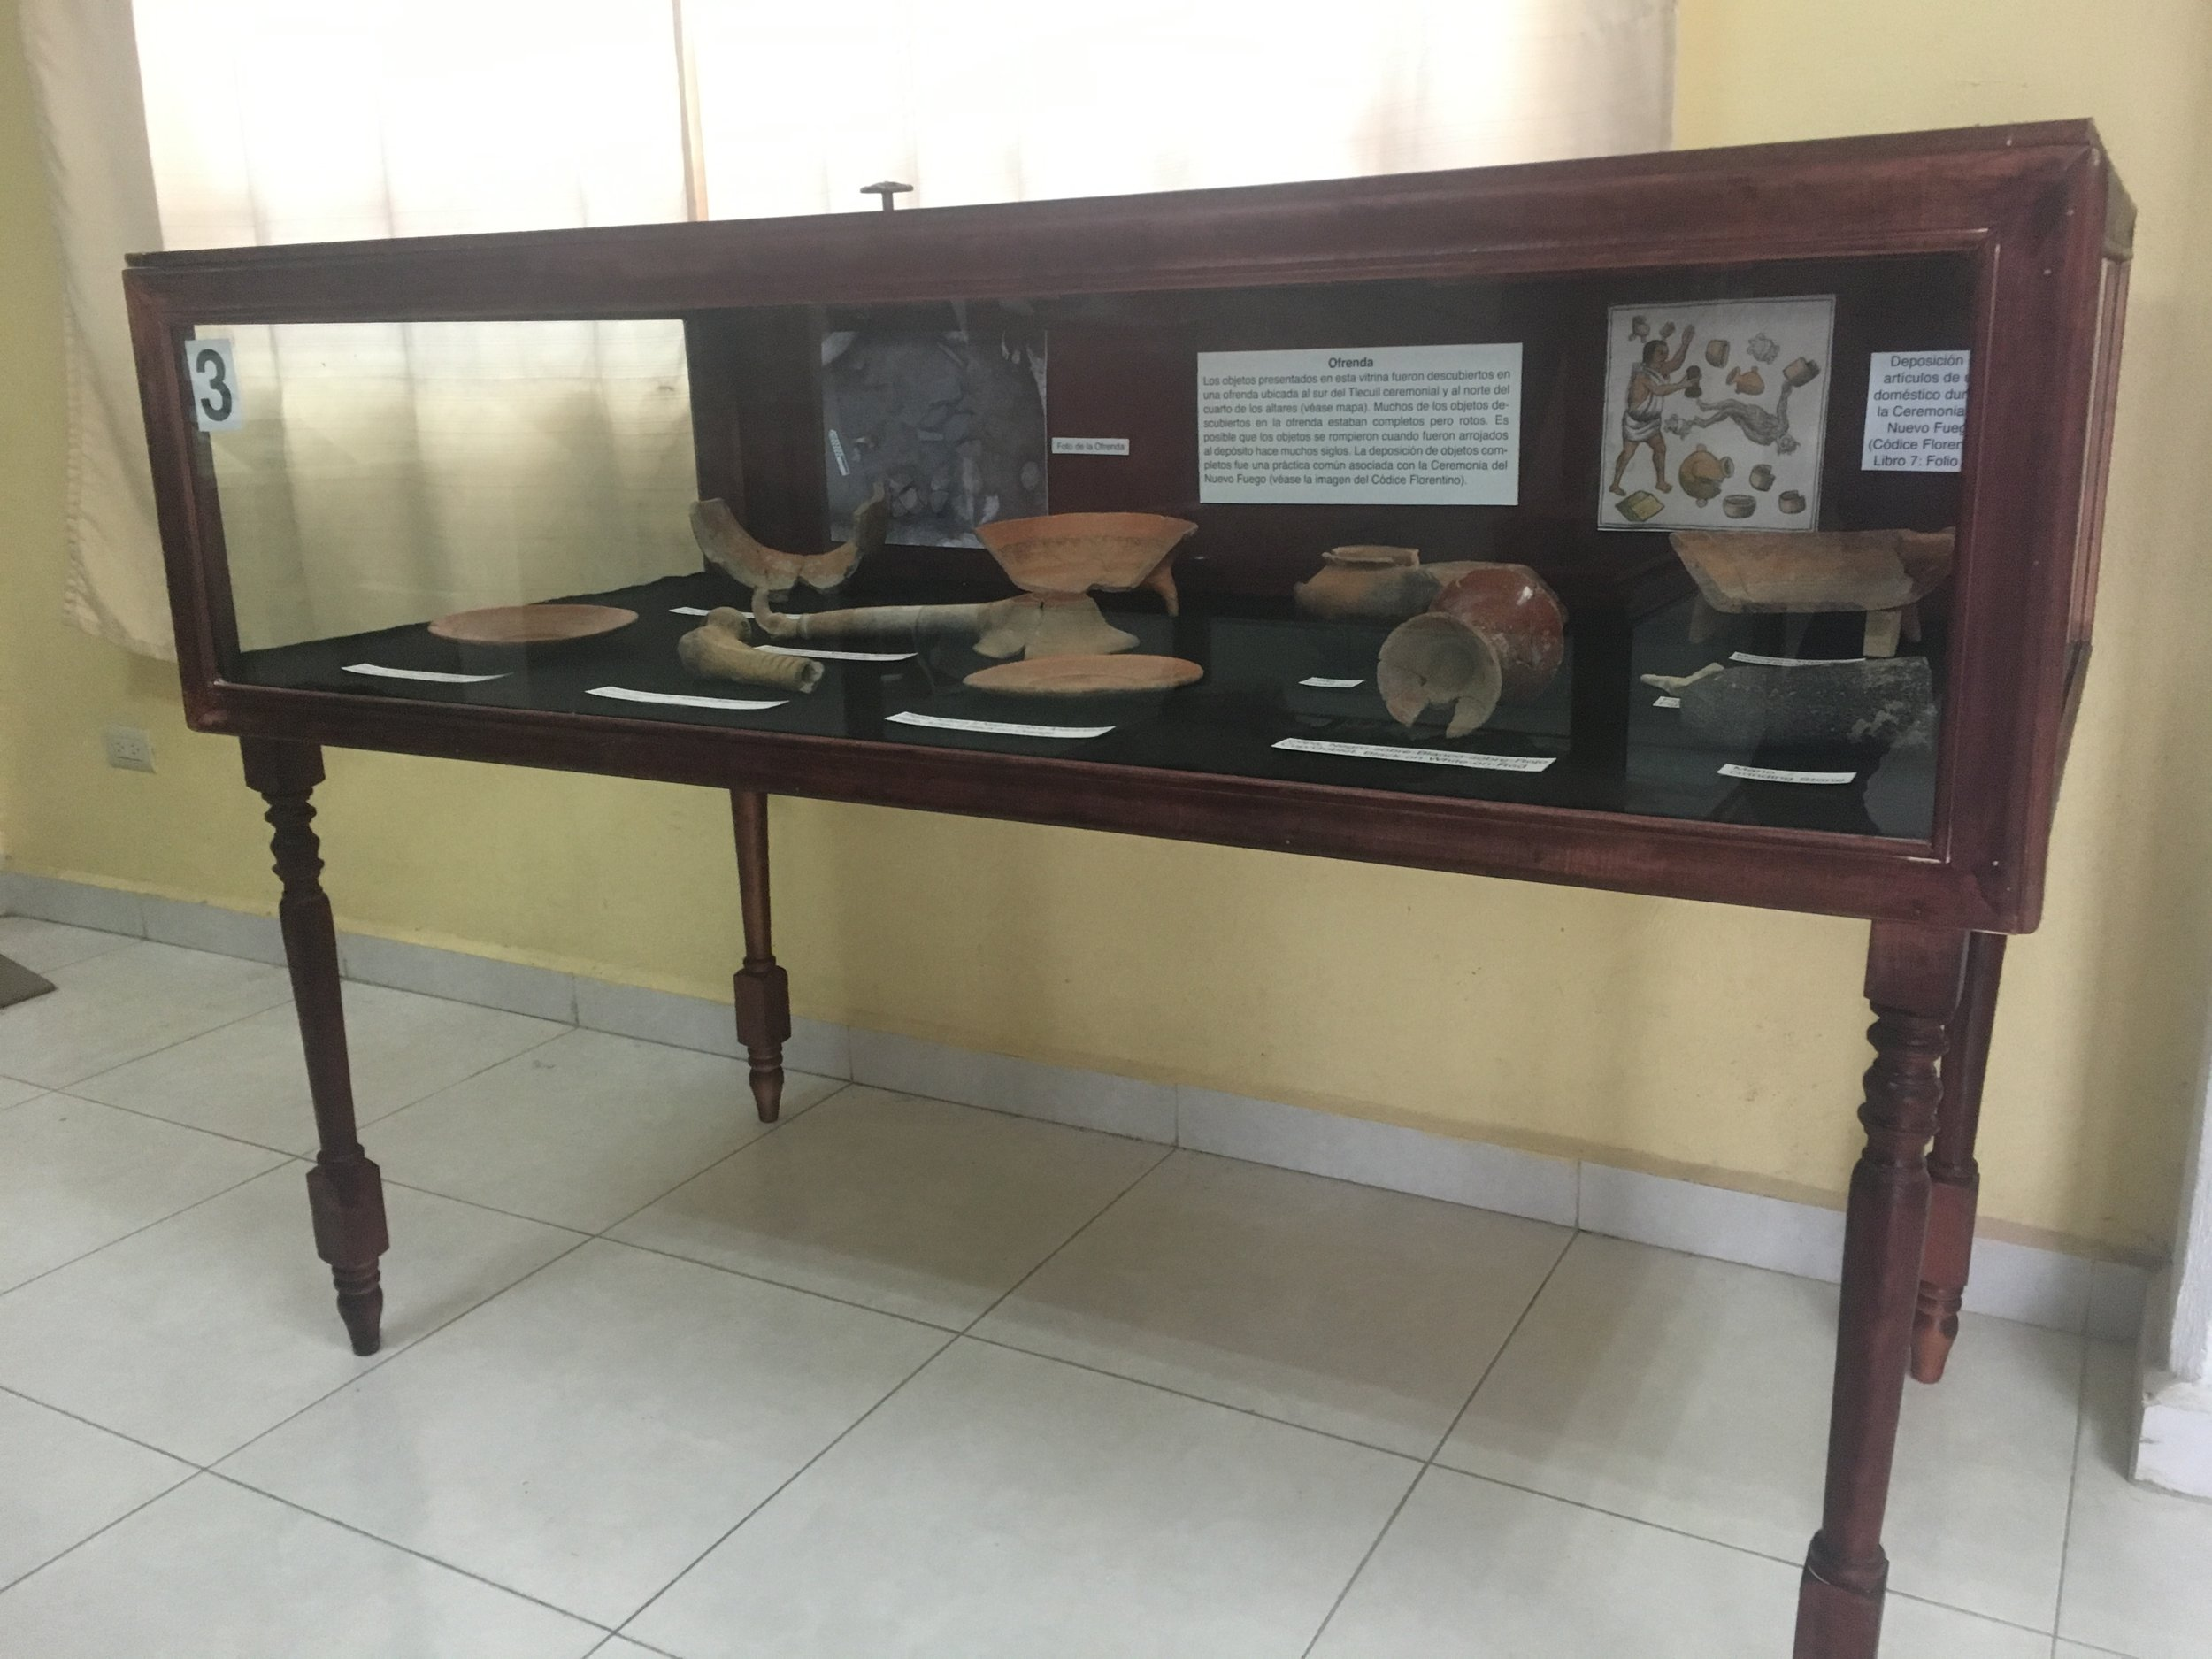 This vitrine contains the objects recovered in a large ritual deposit that may have been associated with a New Fire Ceremony.